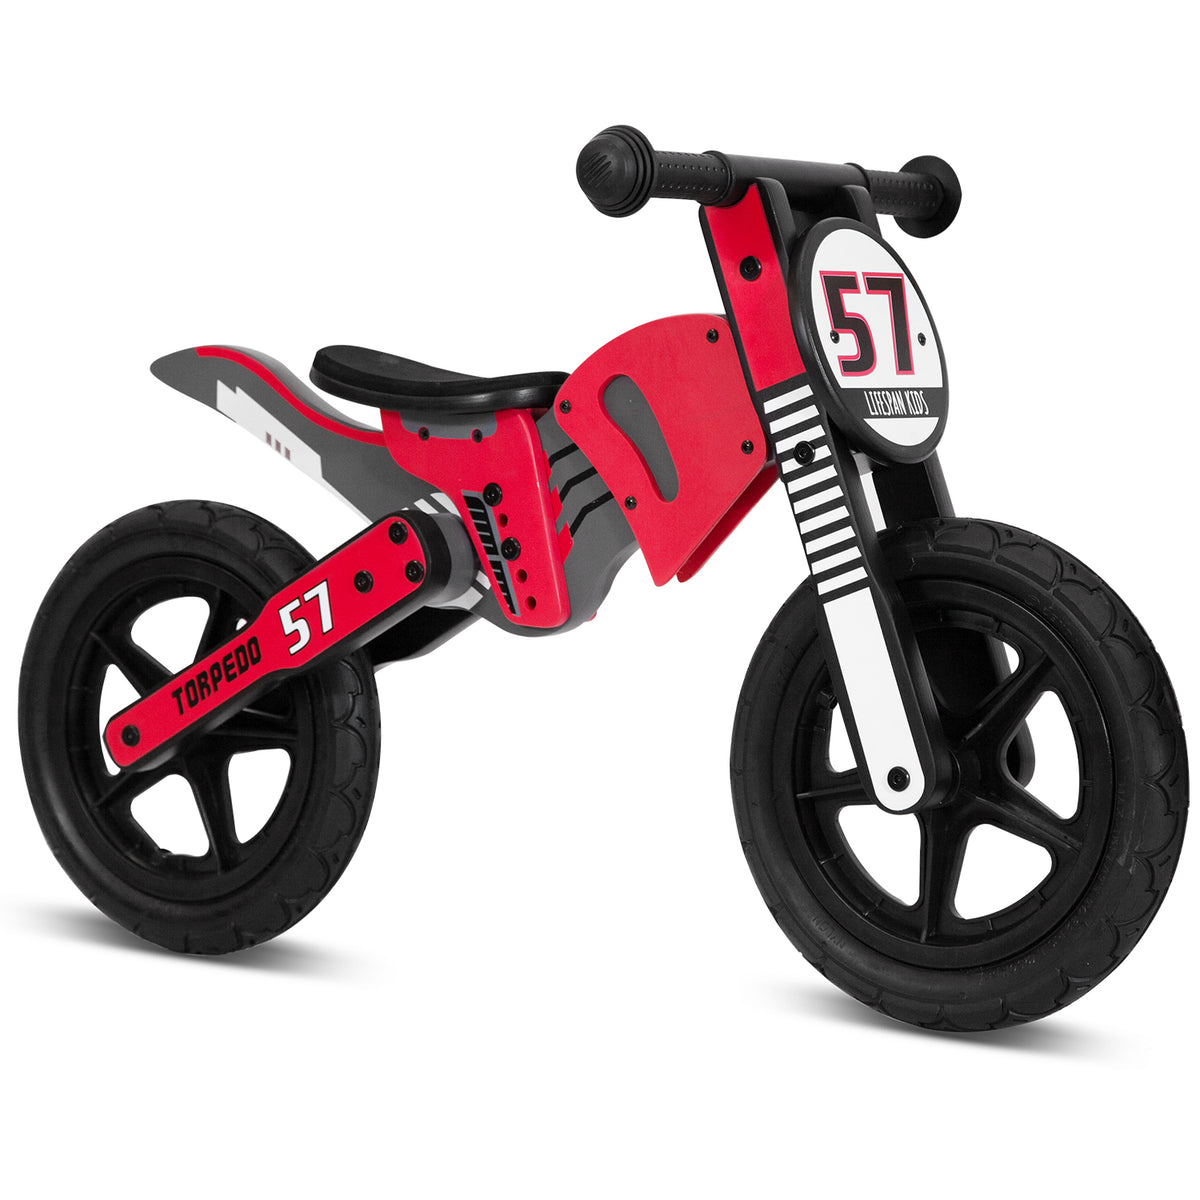 Lifespan Kids Torpedo Balance Bike